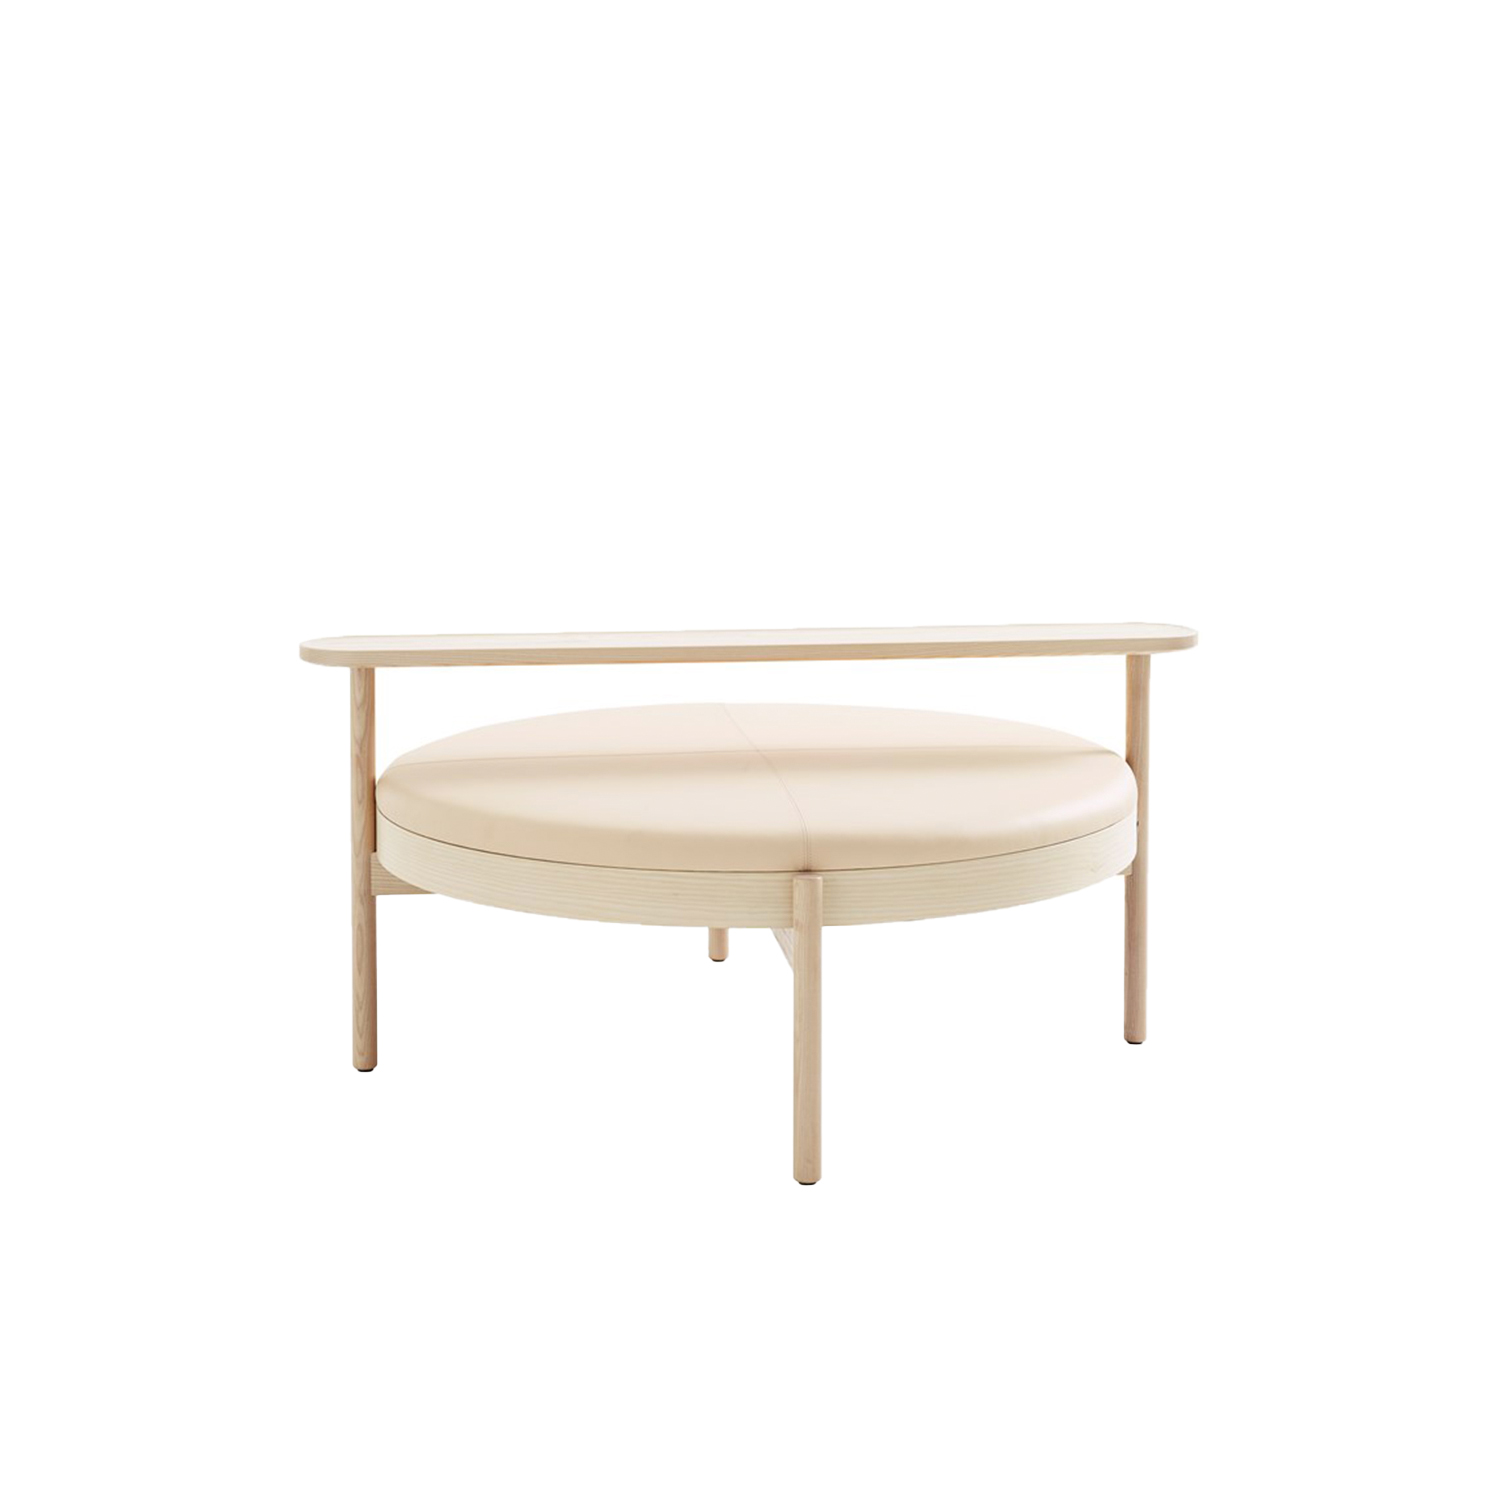 Hygge Ottoman with Long Table - It was while they were on a sailing trip to the Danish island of Læsø that Johan and Nina Kauppi found the inspiration to create a generously proportioned seating solution that can be shared by several people – creating that special feeling of cosiness and conviviality that the Danes call 'hygge'. Hygge (2020) is a family of seating 'islands', which use the same frame design and cushion, yet create highly individual variations depending on the accessories with which they are combined.  By choosing a leg frame with armrests, a small round table or a long rectangular table, you can vary the expression and practical function of each unit. The solid wooden frame comes in oak or ash, finished with standard stains on ash, or white glaze on oak and ash. Cold-cured foam cushions are covered in a choice of fabric or leather, and changing the covers is easy. Accessories includes a USB charger which can be placed alongside the legs. Hygge is supplied assembled, with adjustment screws under the feet. Hygge offers a pleasant setting in which to relax and take a break in lounges and hotel lobbies. Individually or in family groups these seating islands are ideal as freestanding seats in a wide variety of rooms and public spaces.  Accesories are available at an additional price. Please enquire for more information and details. | Matter of Stuff